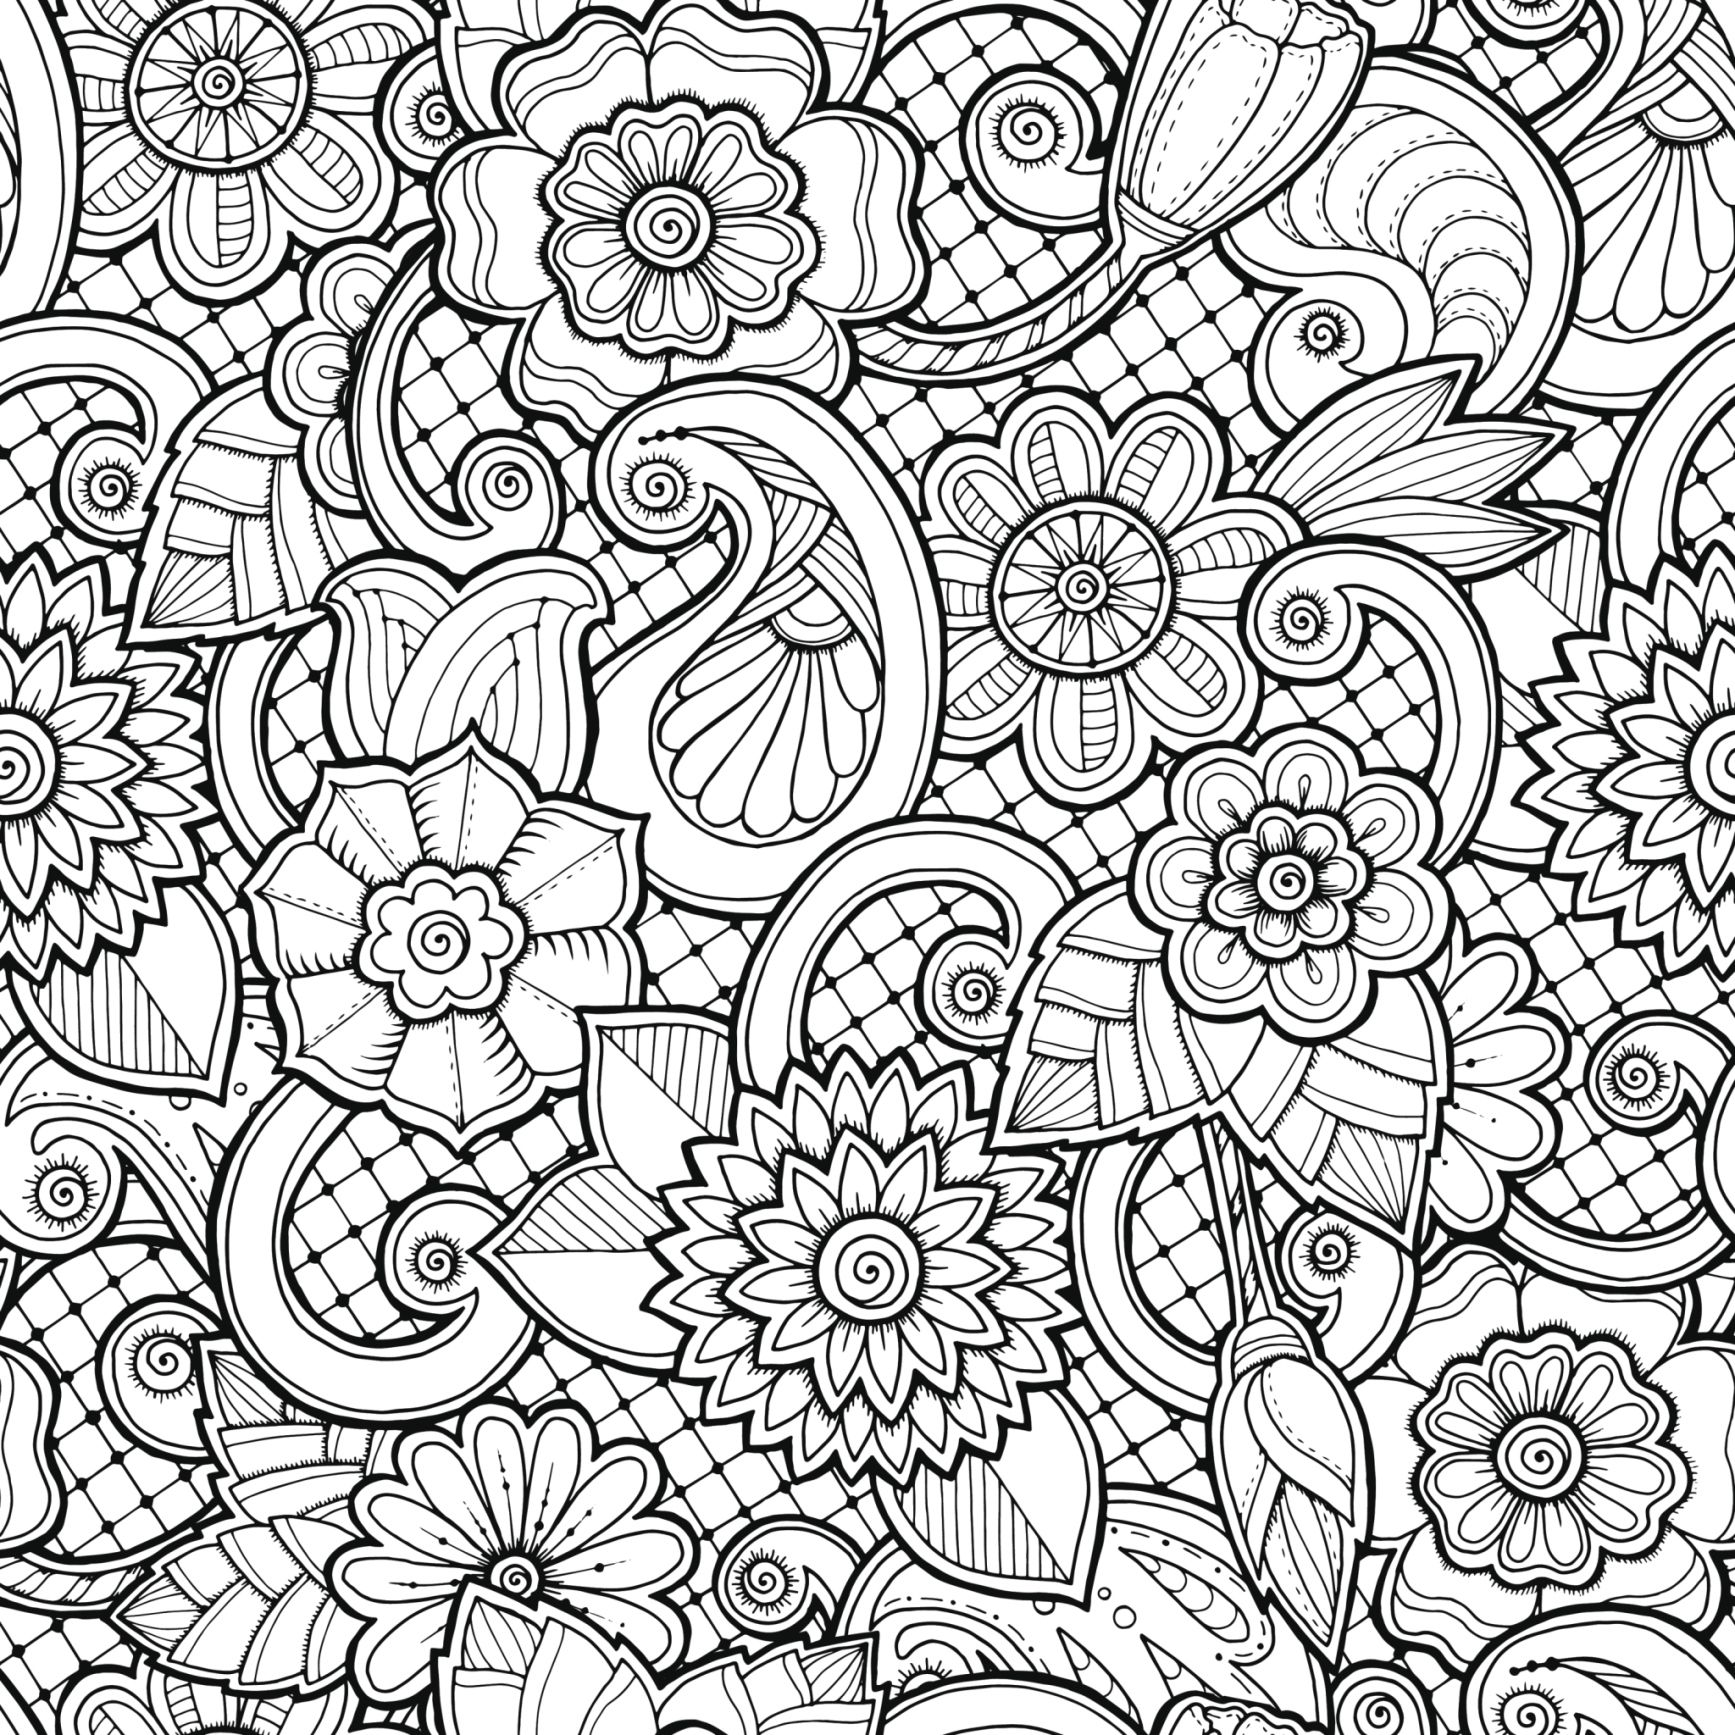 coloringpagesbliss kids coloring pages yahoo image search results - Colouring Designs